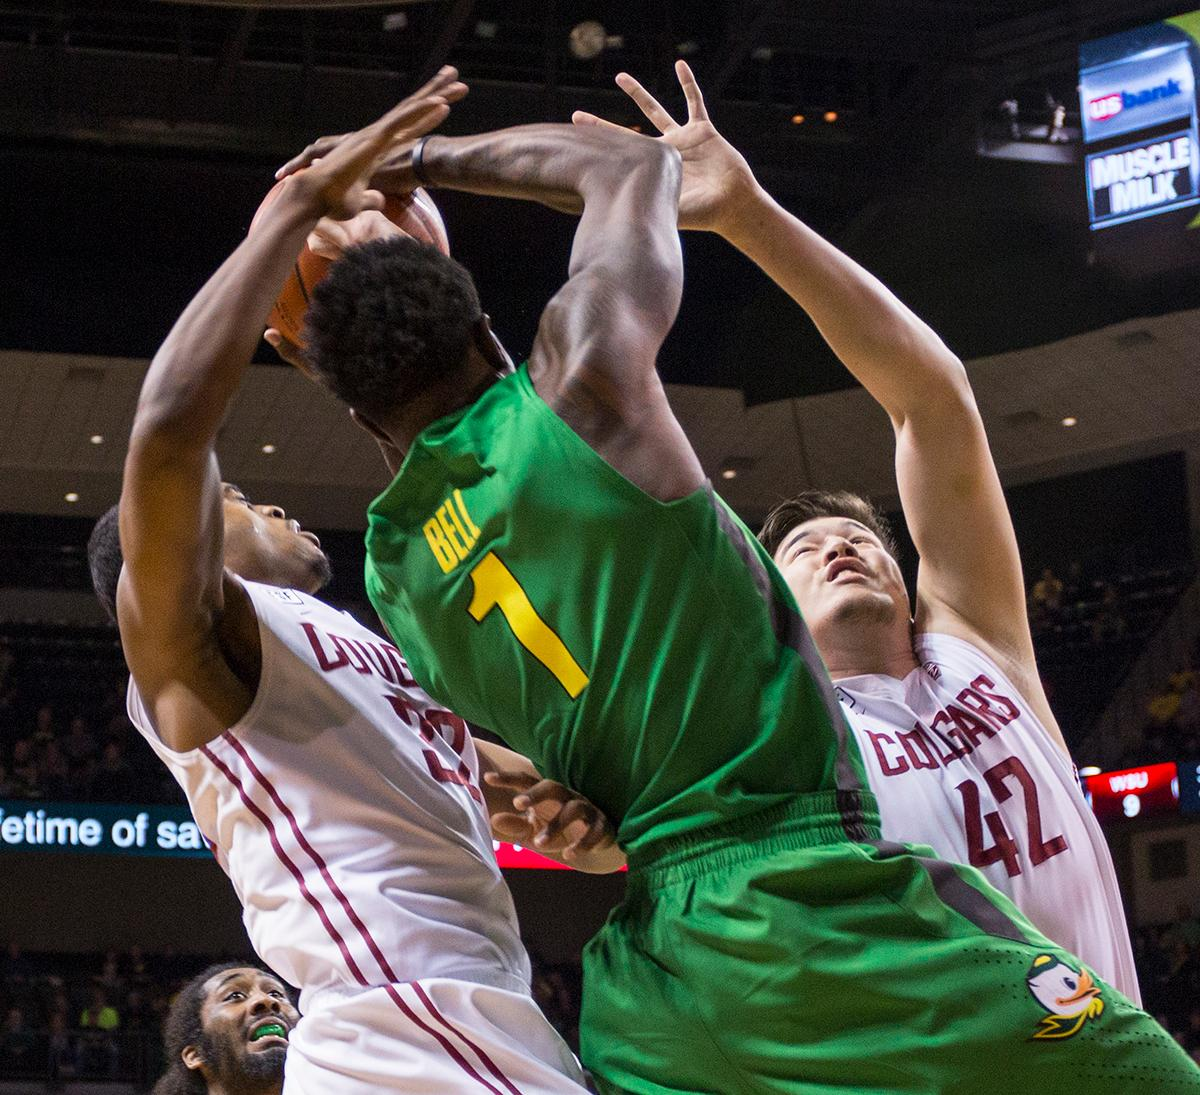 Oregon Ducks' Jordan Bell (#1) fights for the ball against Washington State Cougars' Que Johnson (#32) and Conor Clifford (#42). The Ducks beat the Cougars 76-62. Kianna Cabuco, Oregon News Lab